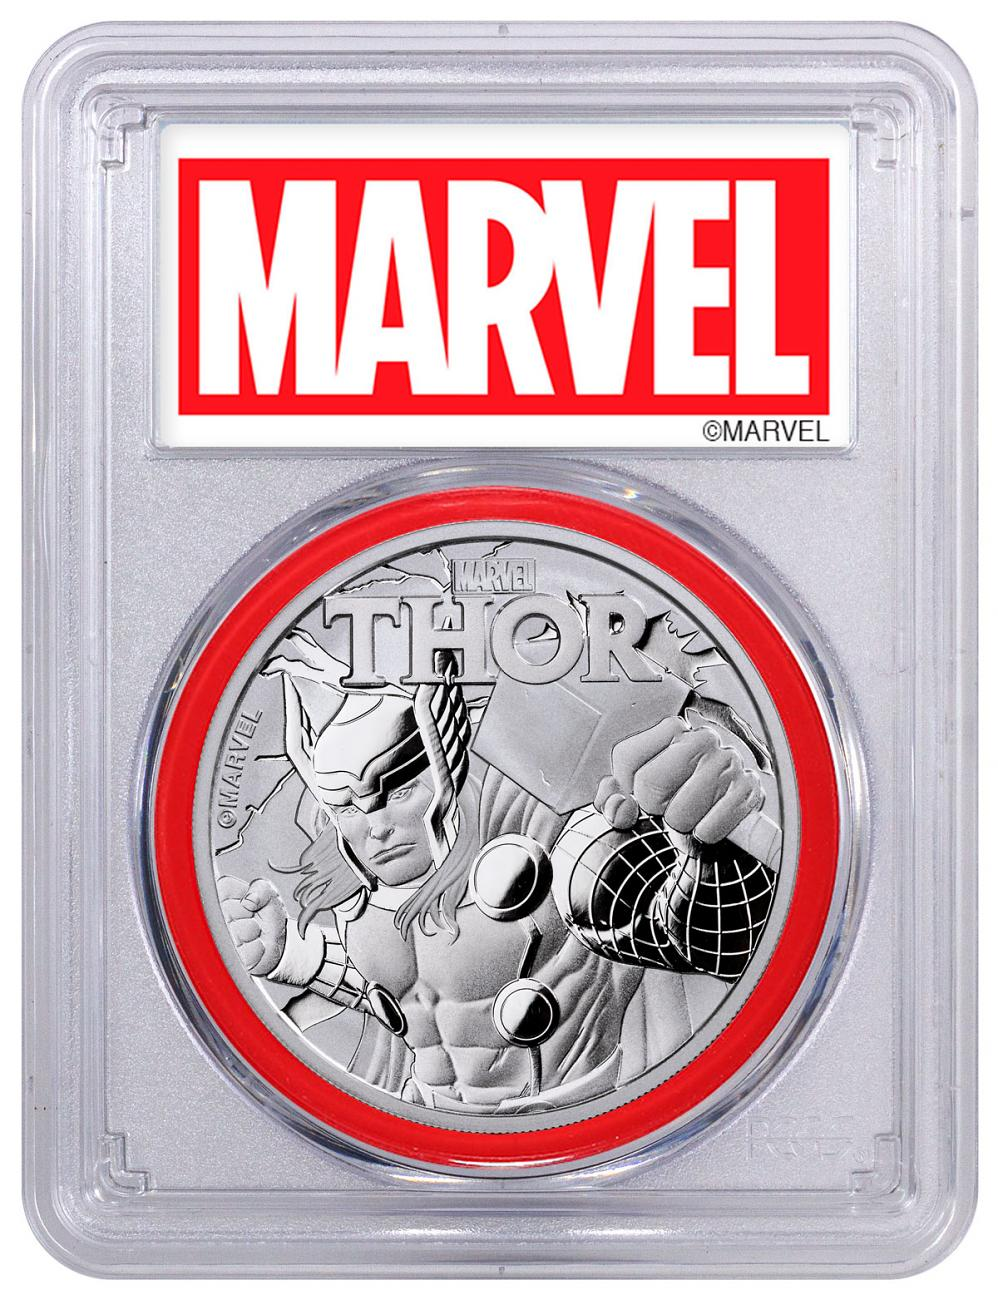 2018 Tuvalu Thor 1 oz Silver Marvel Series $1 Coin PCGS MS69 FS Red Gasket Exclusive Marvel Label